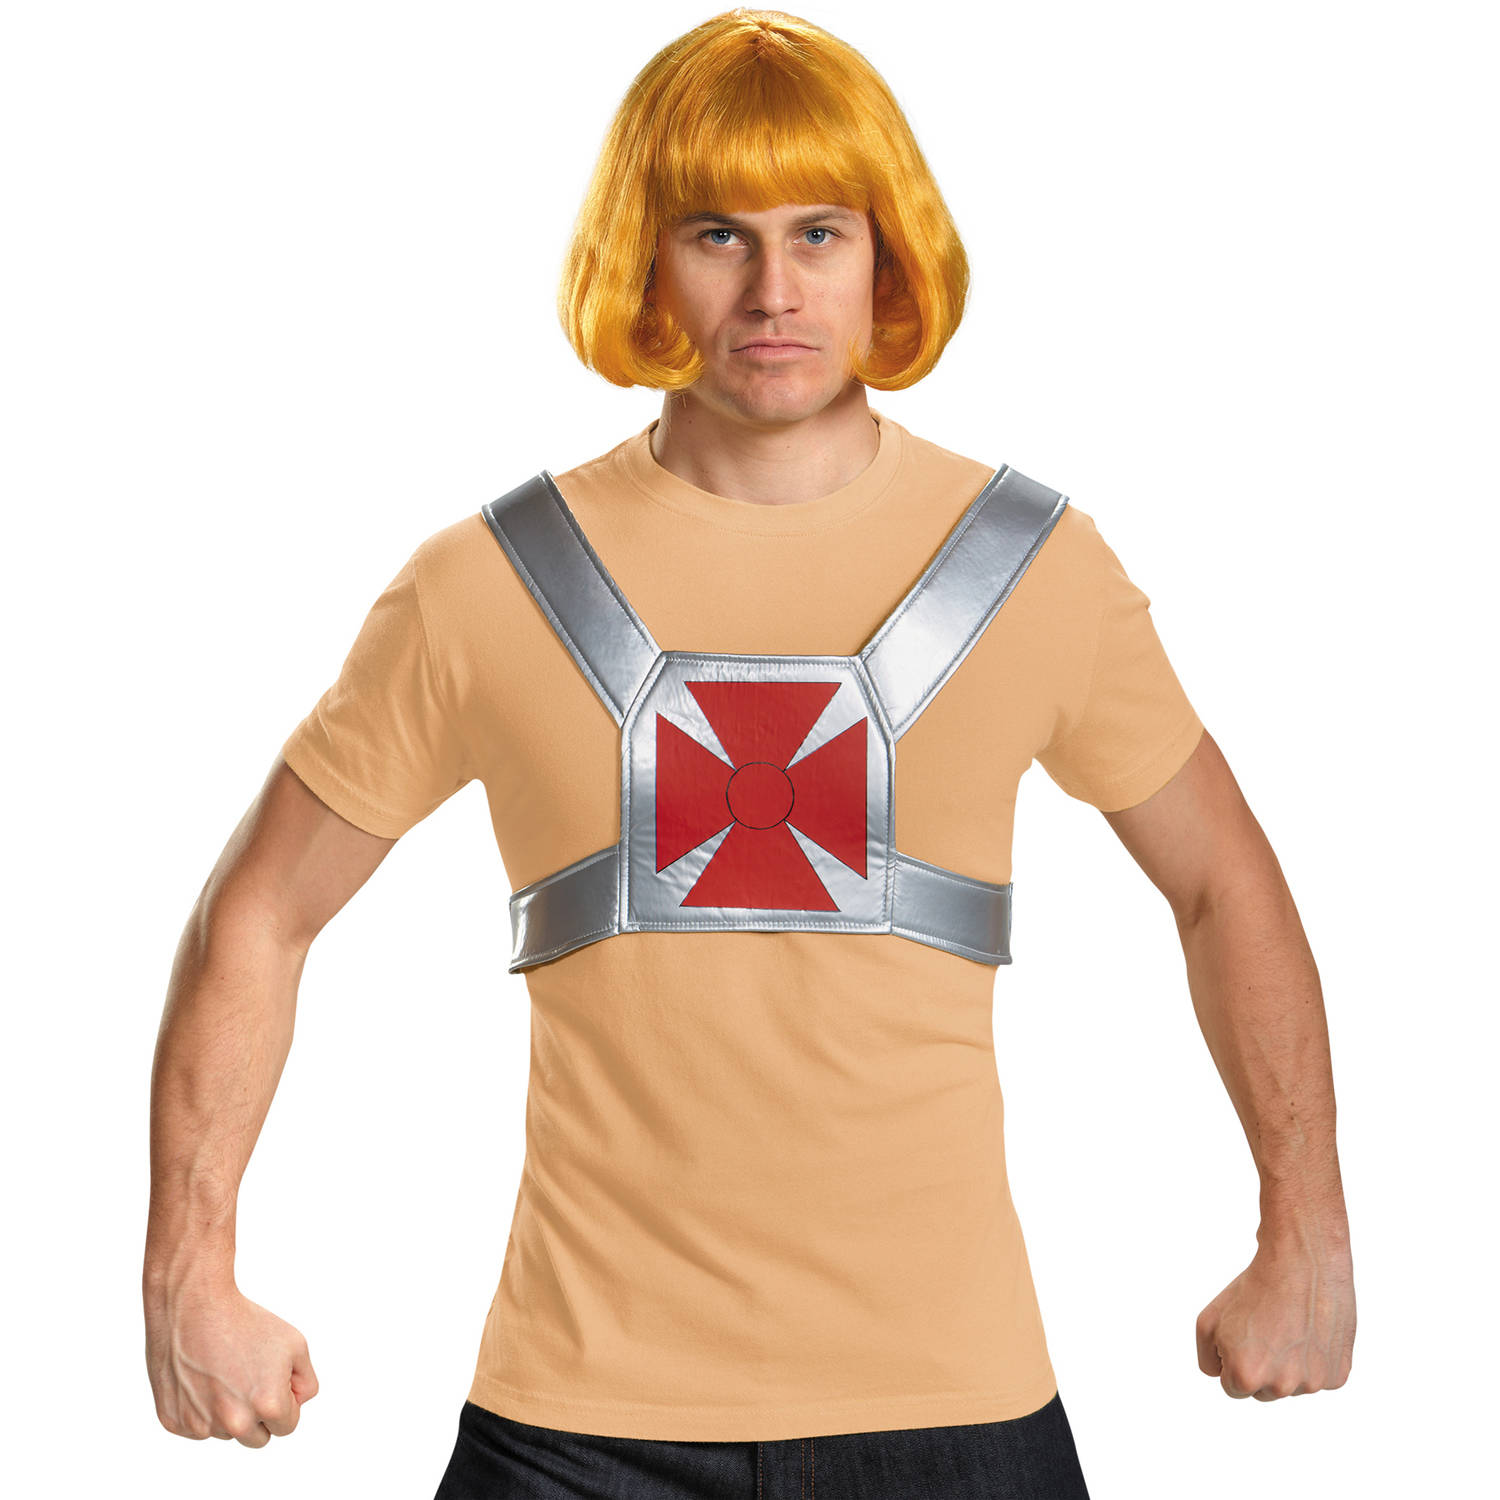 He-Man Kit Adult Halloween Accessory